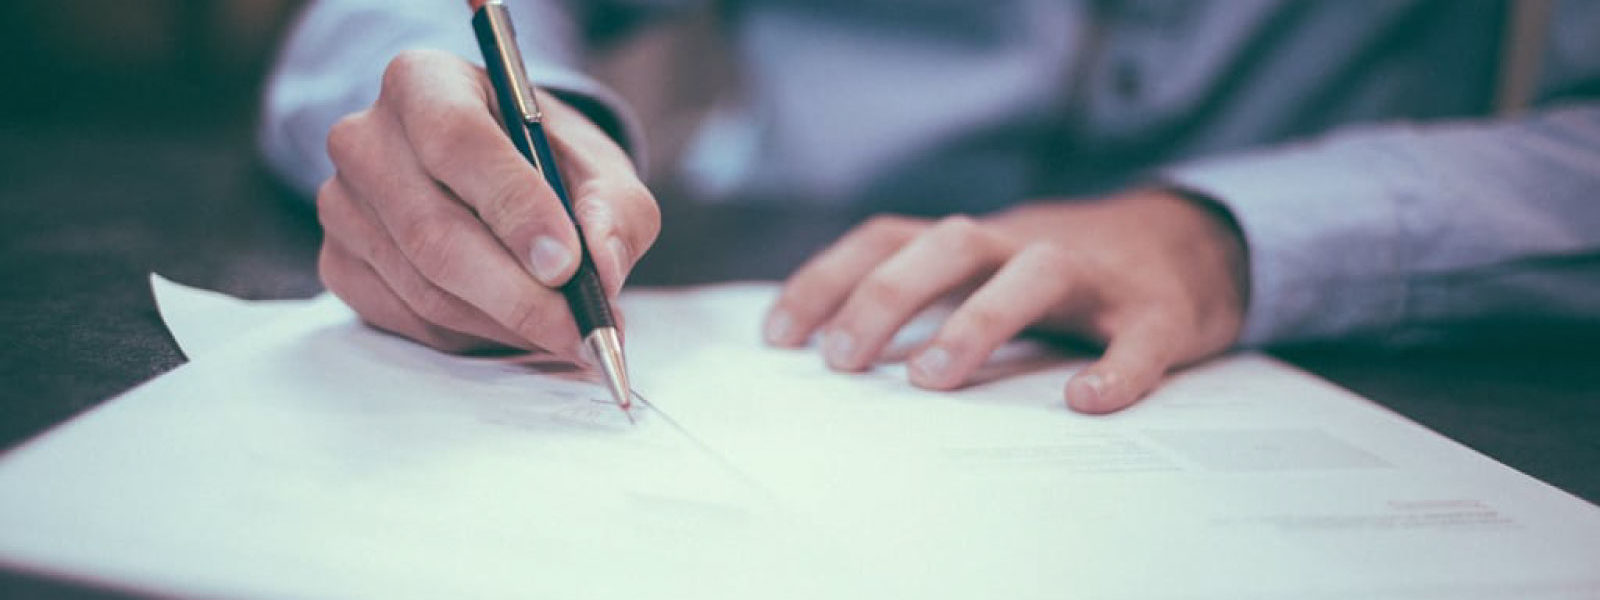 6 Things Artists & Producers Should Know About Beat Lease Agreements